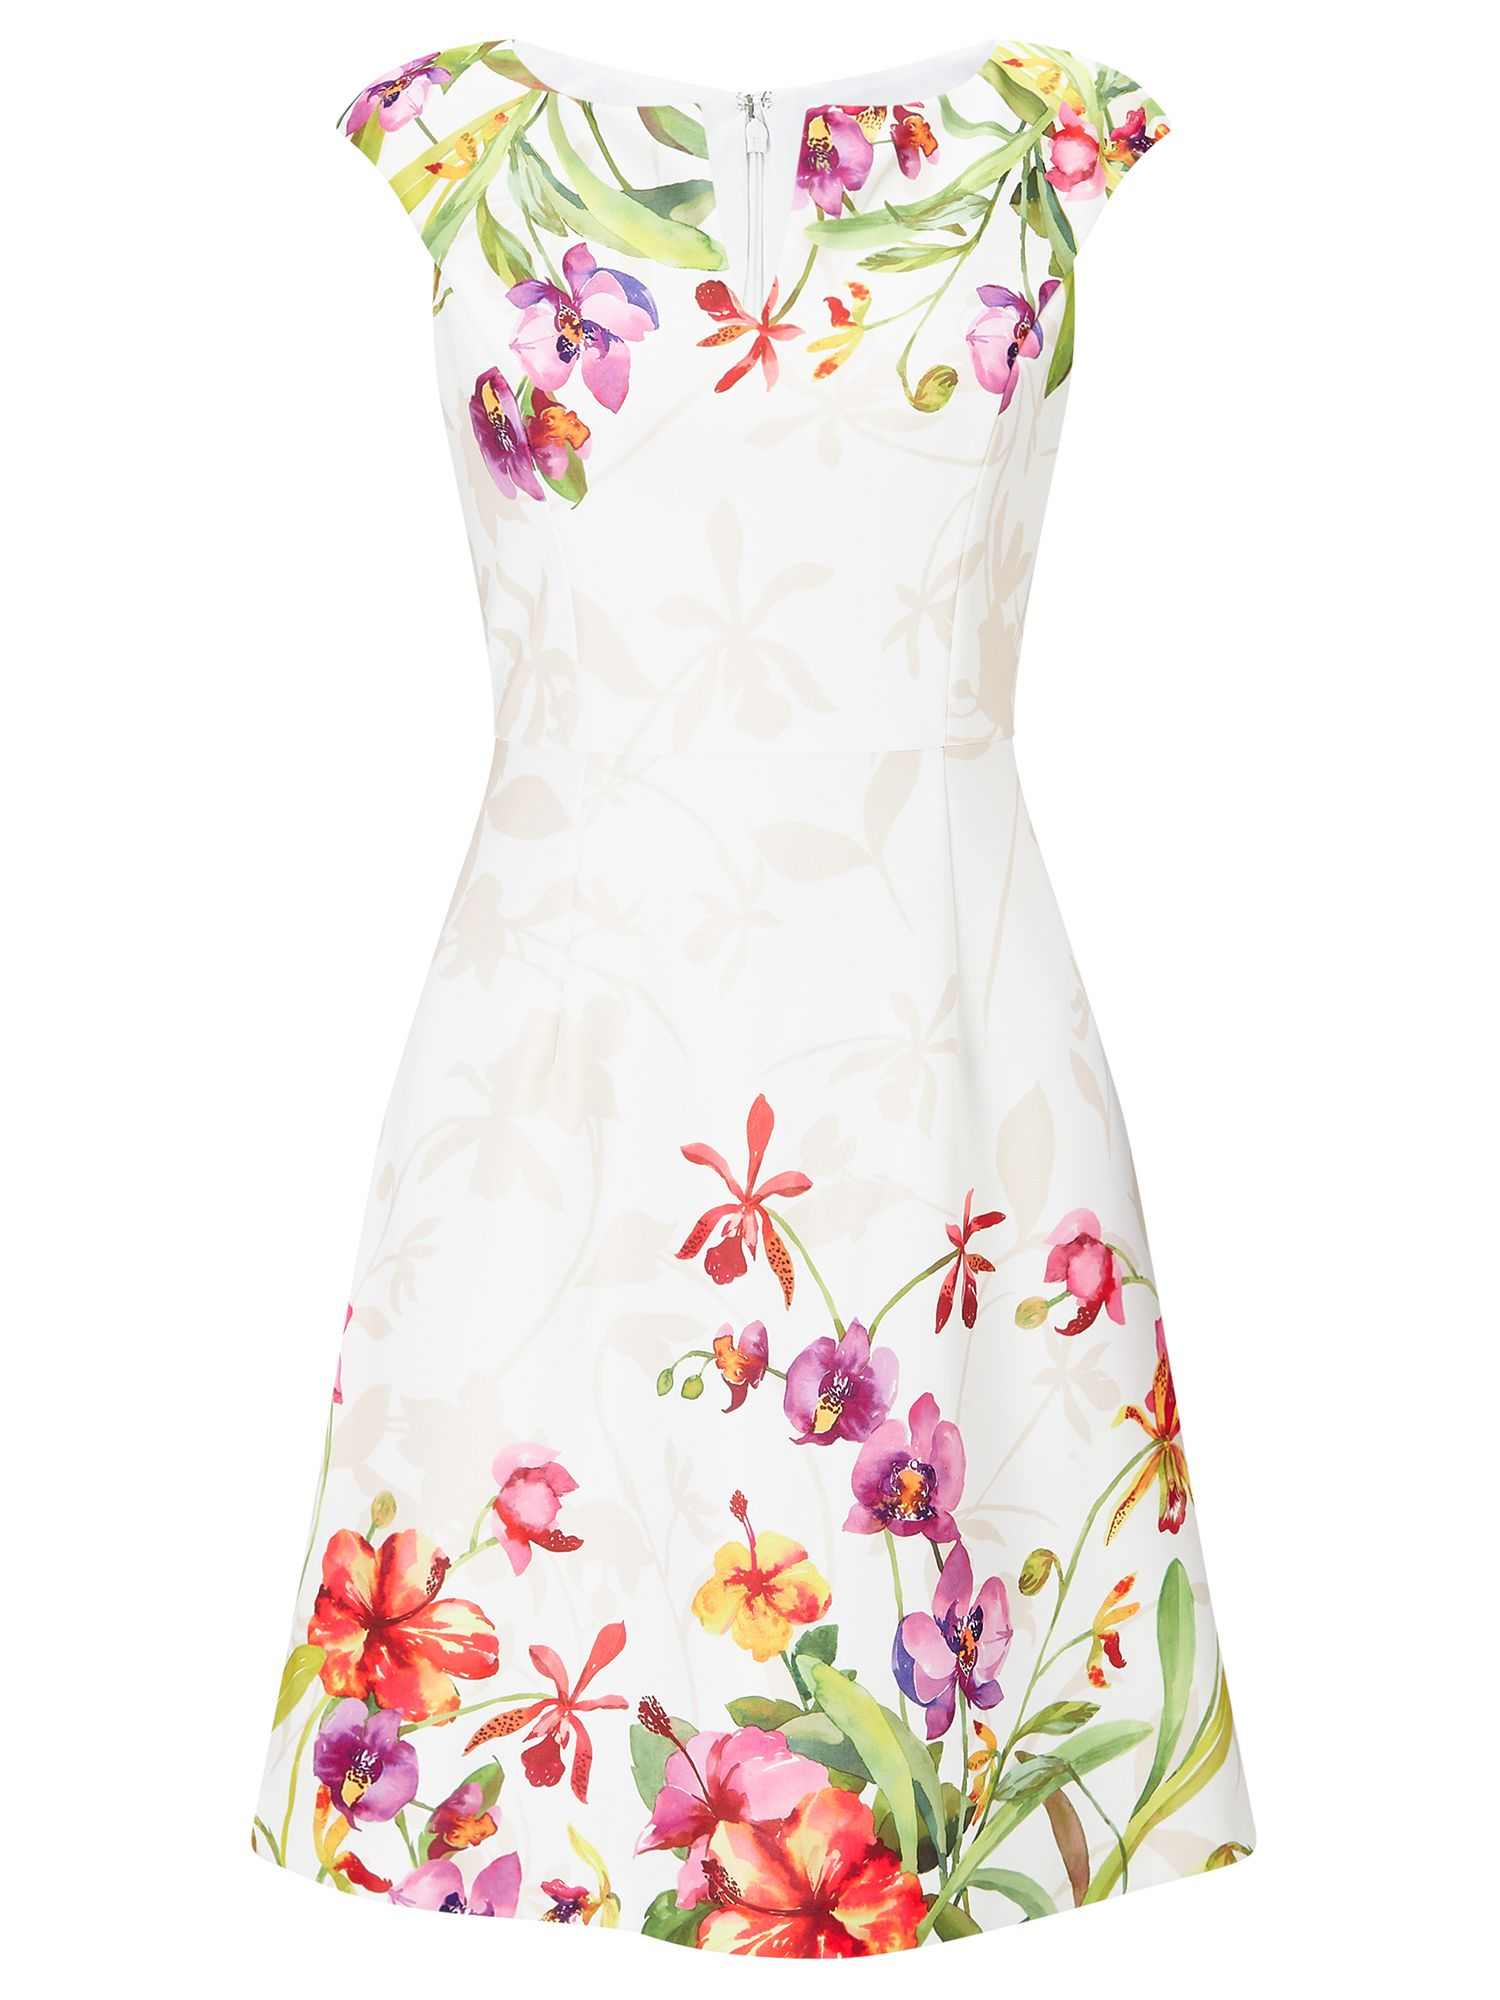 Adrianna Papell Cap Sleeve Floral Dress, Multi-Coloured